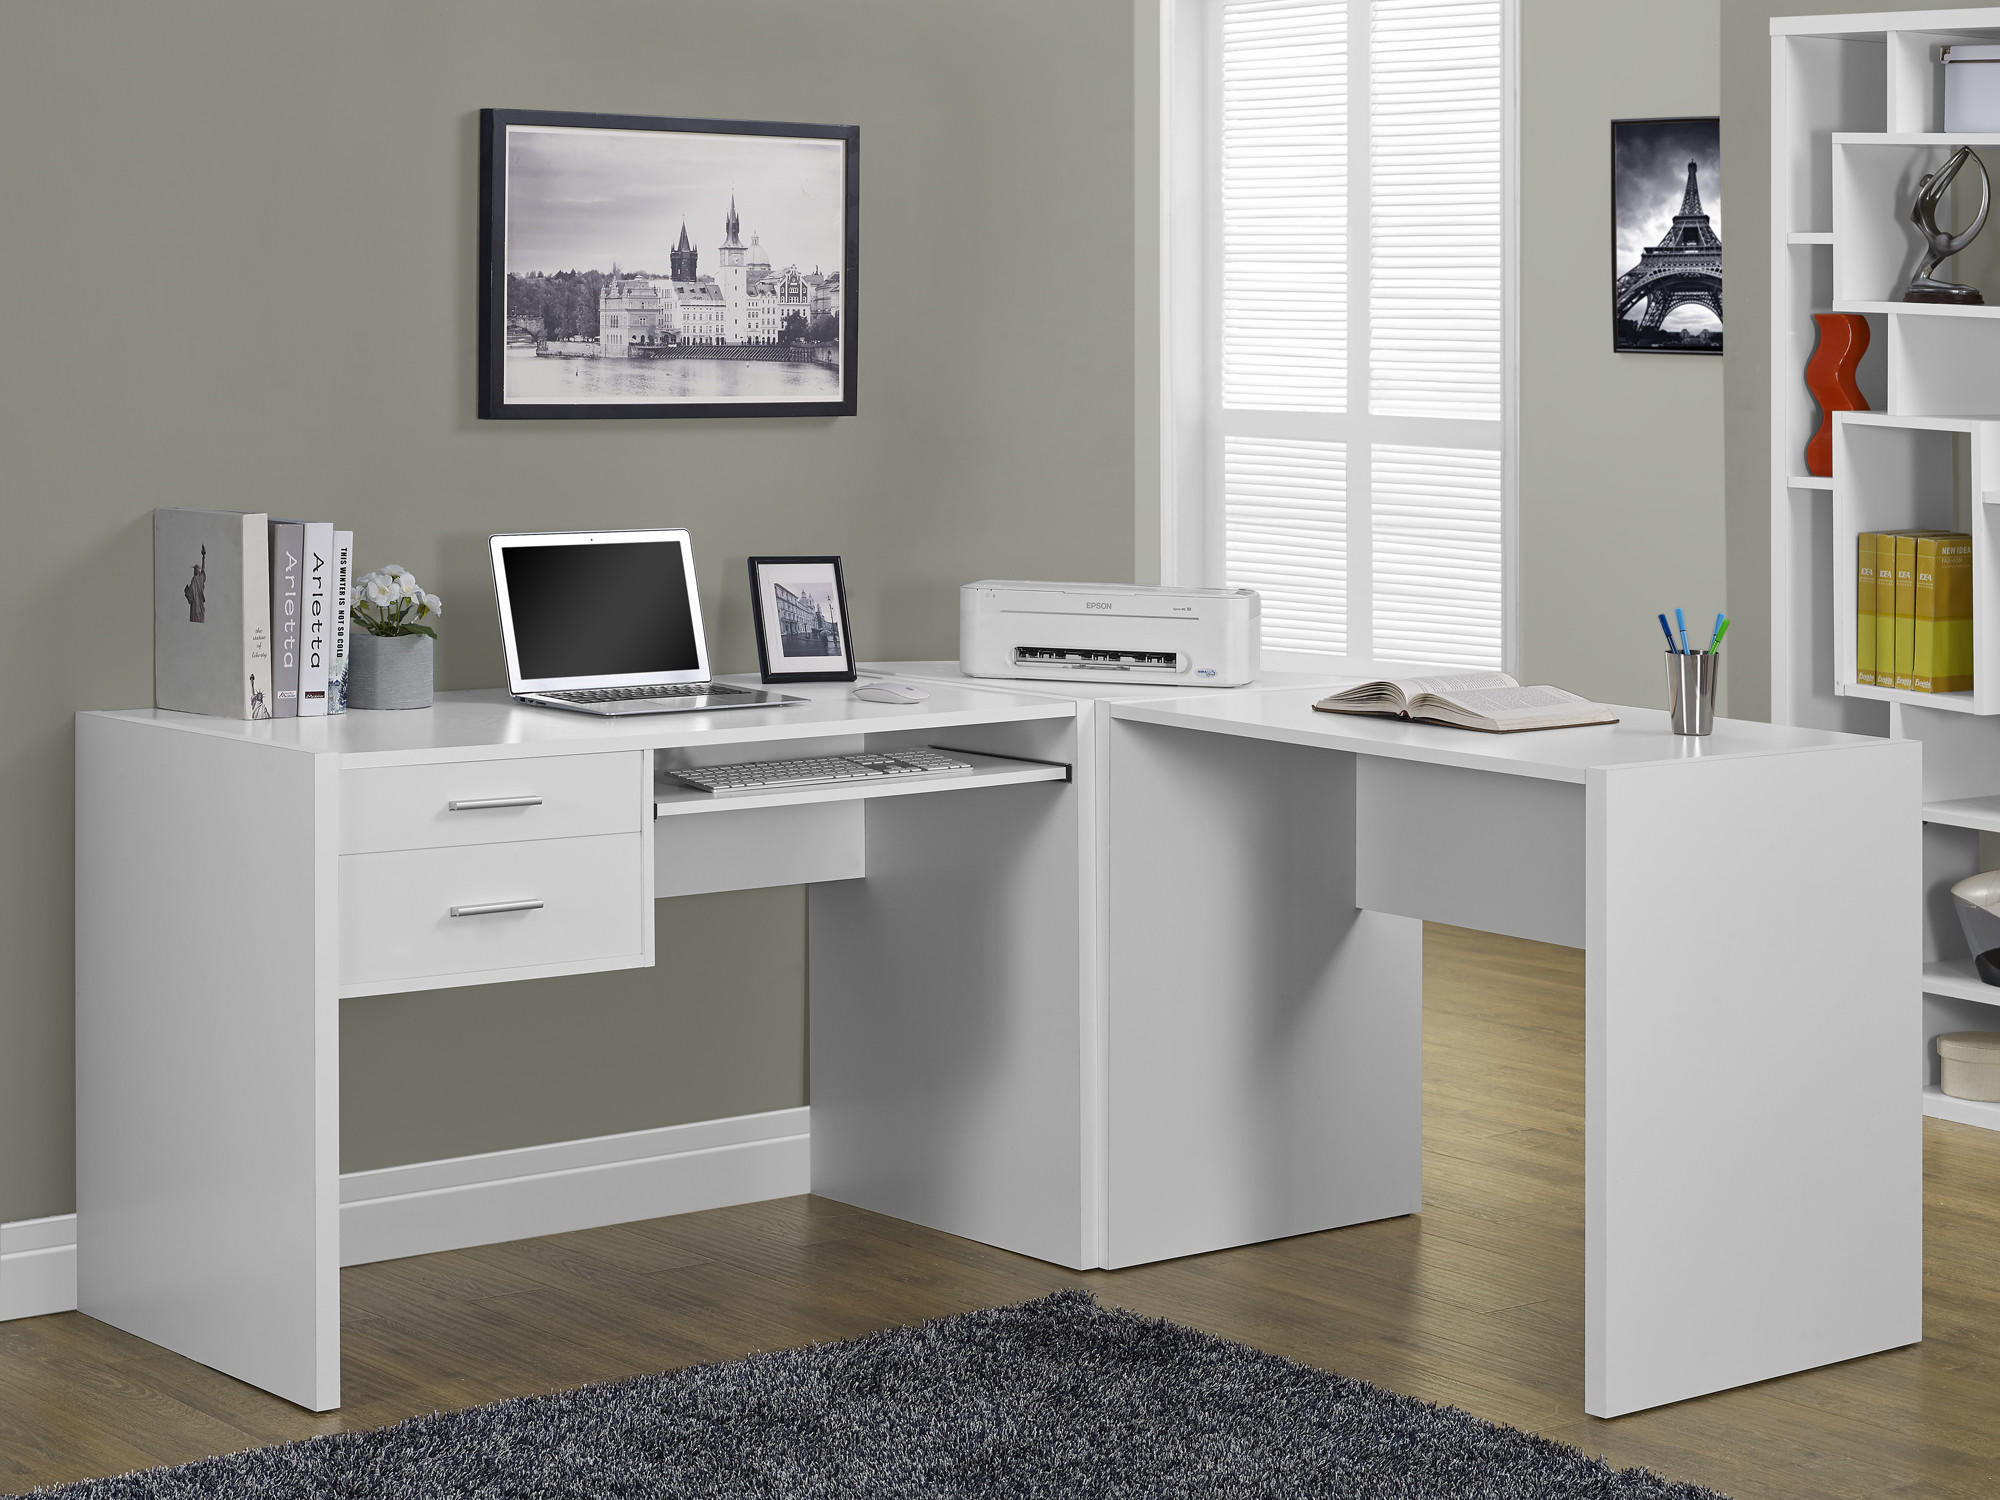 White hollow core computer desk from michael anthony furniture - Bureau ordinateur en coin ...